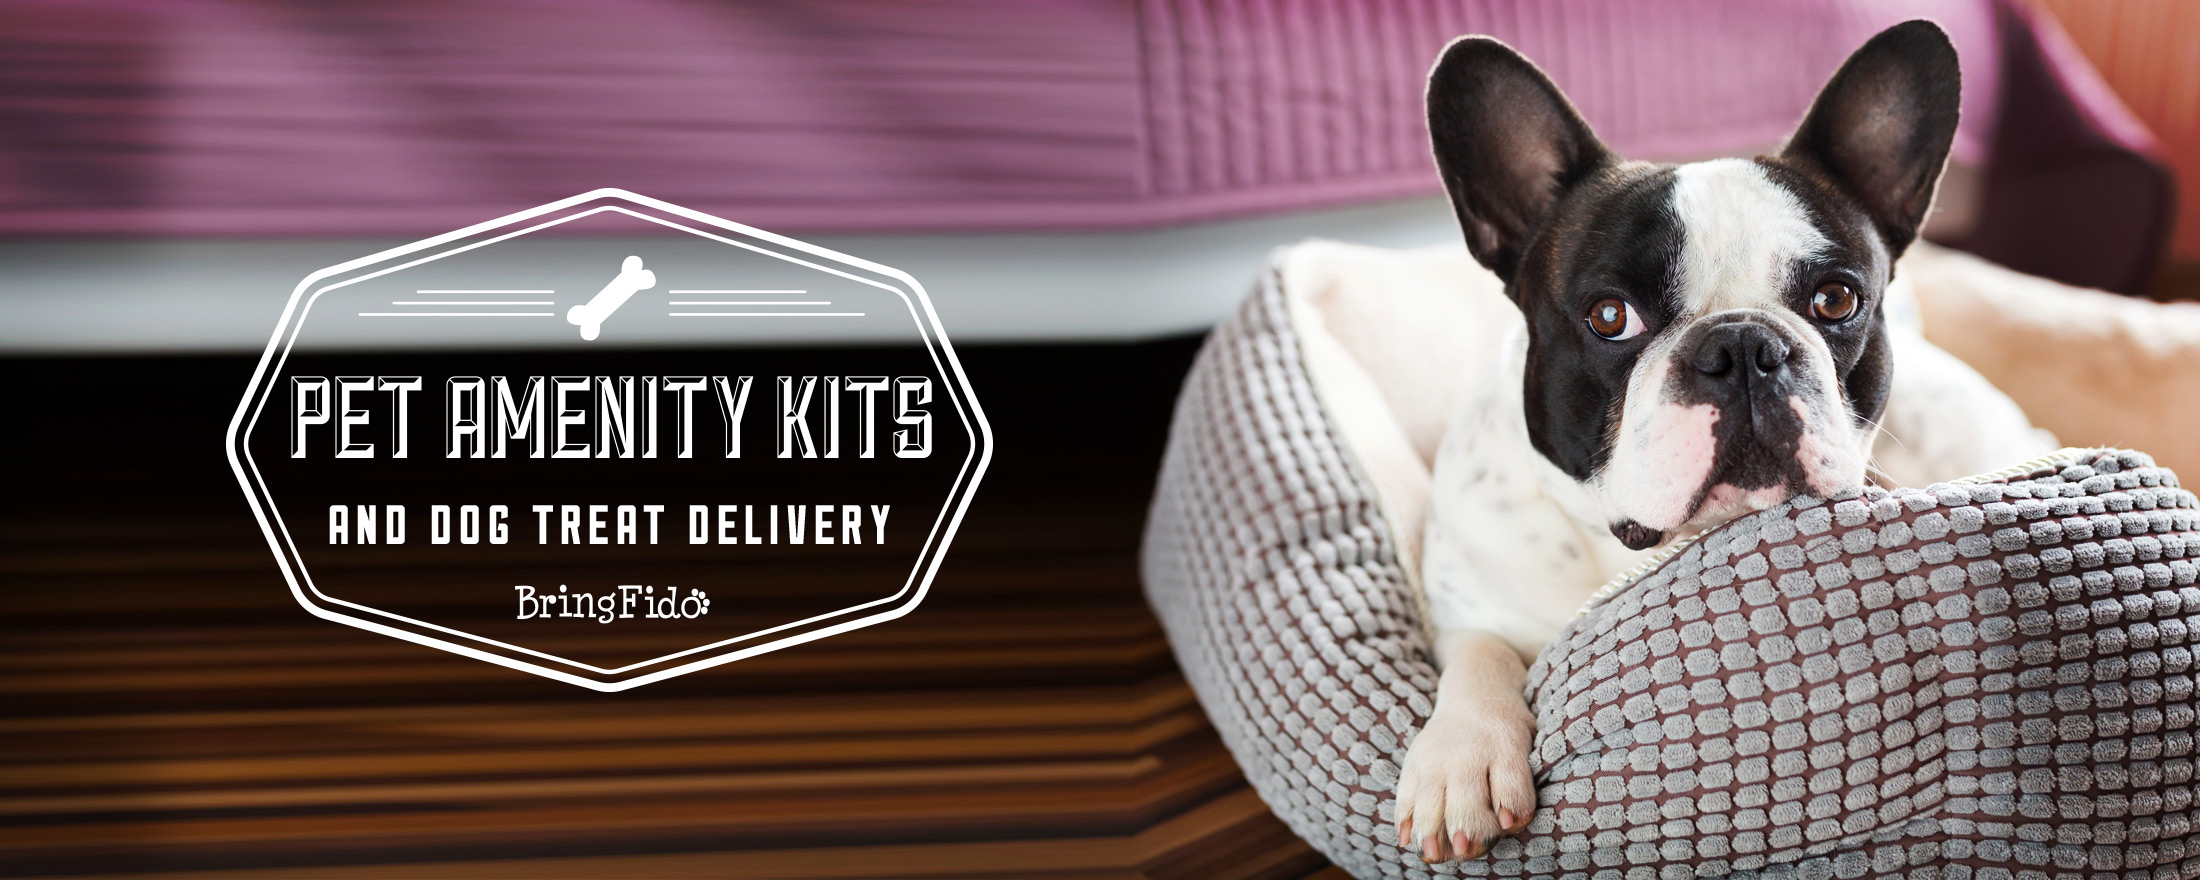 PET AMENITY KITS